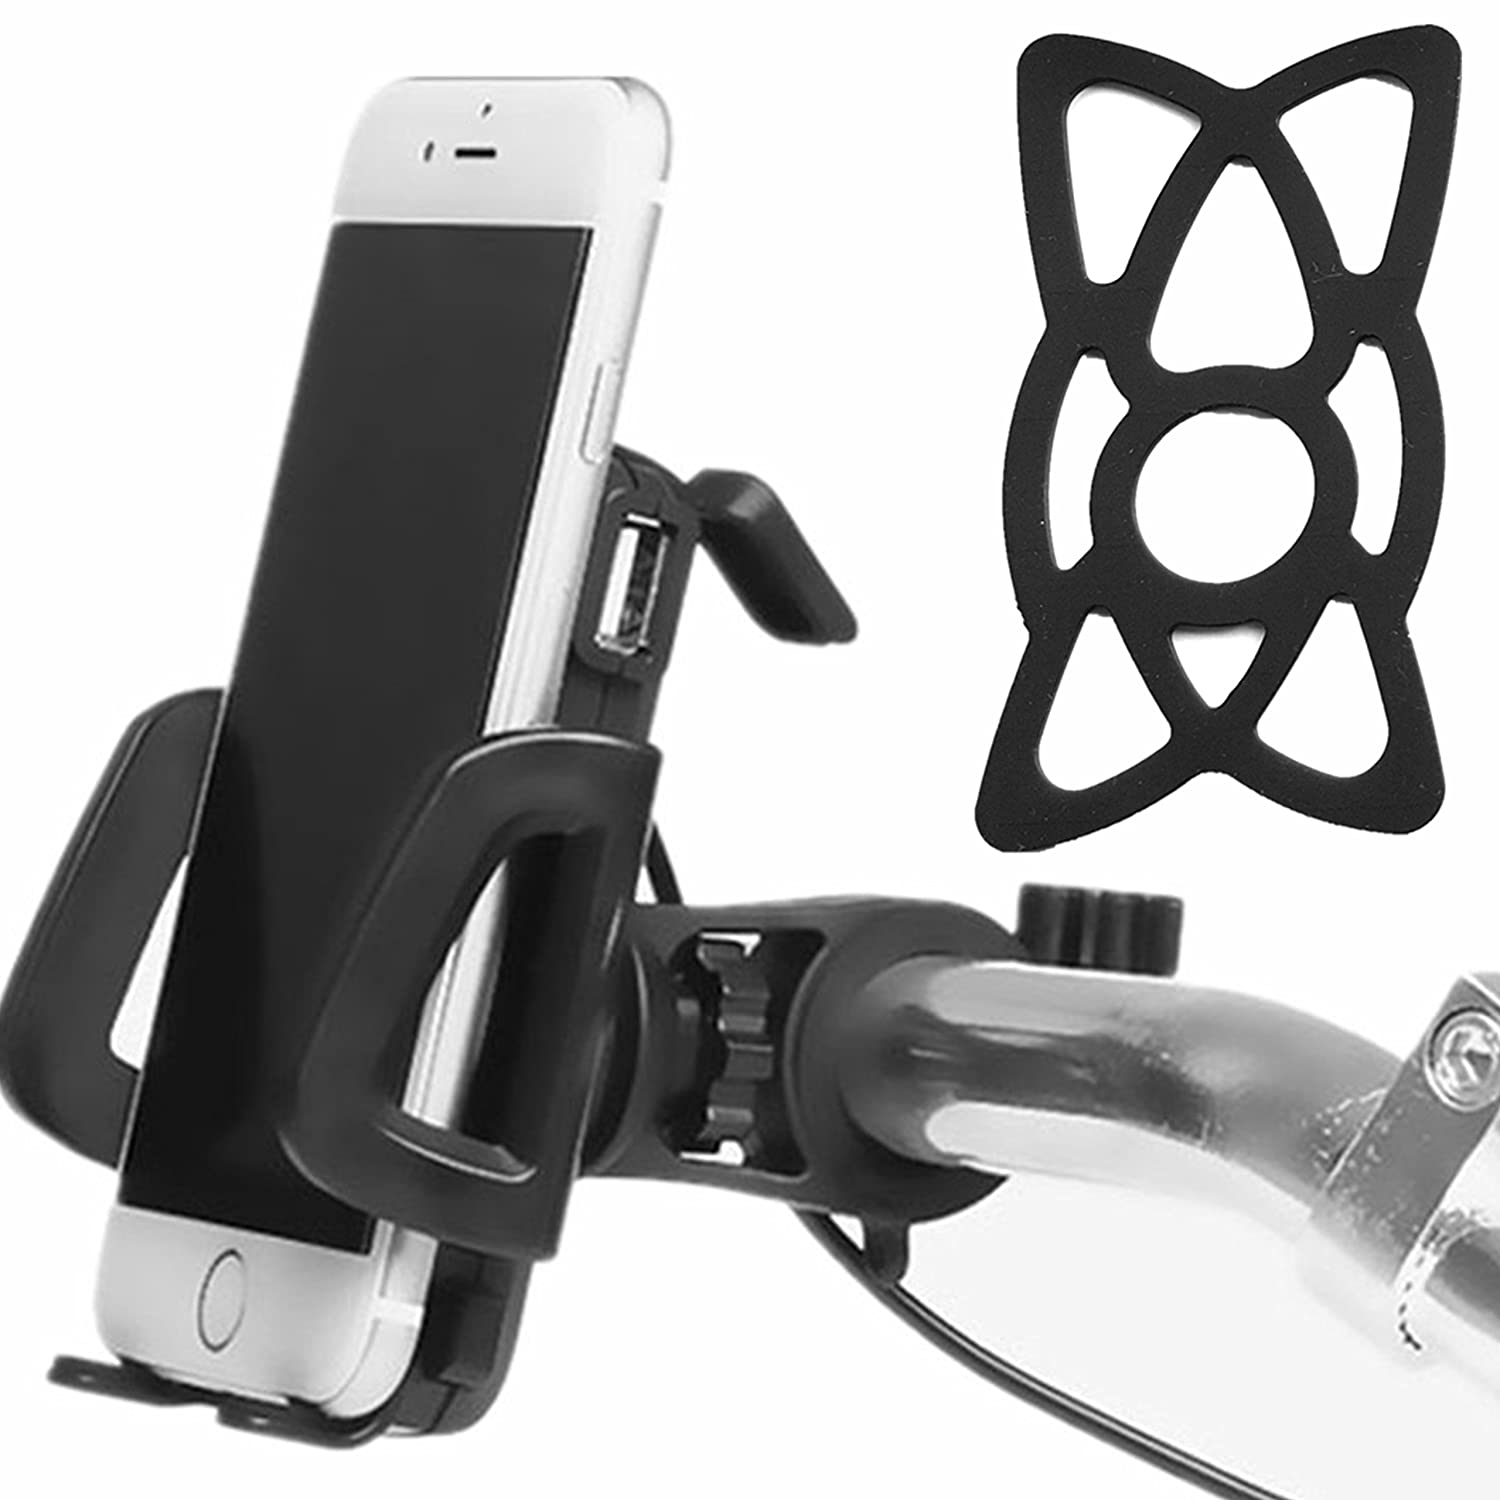 PROCYMD 2 in 1 Waterproof Motorcycle Cell Phone Mount Holder with USB Charger/Power Switch / 3.3FT Power Cable/Safety Bands/Handlebars Mount from 0.6' to 1.4' in Diameter (Black) E-Joy Electronics 4327074719